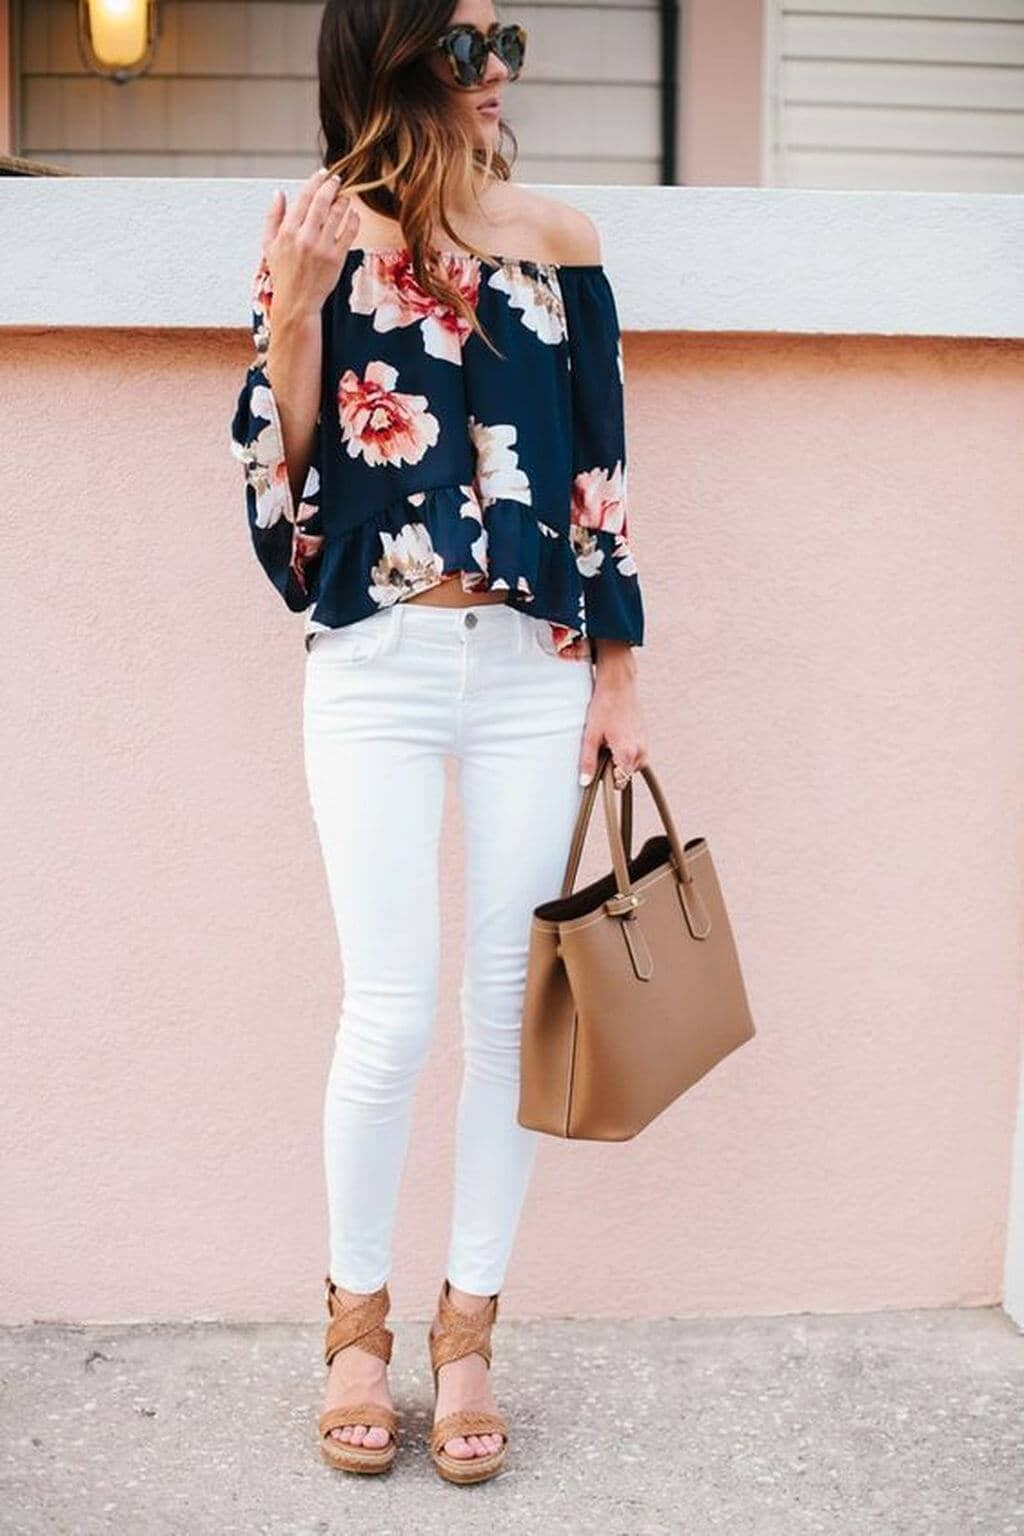 Blooming Off the Shoulder Silhouette